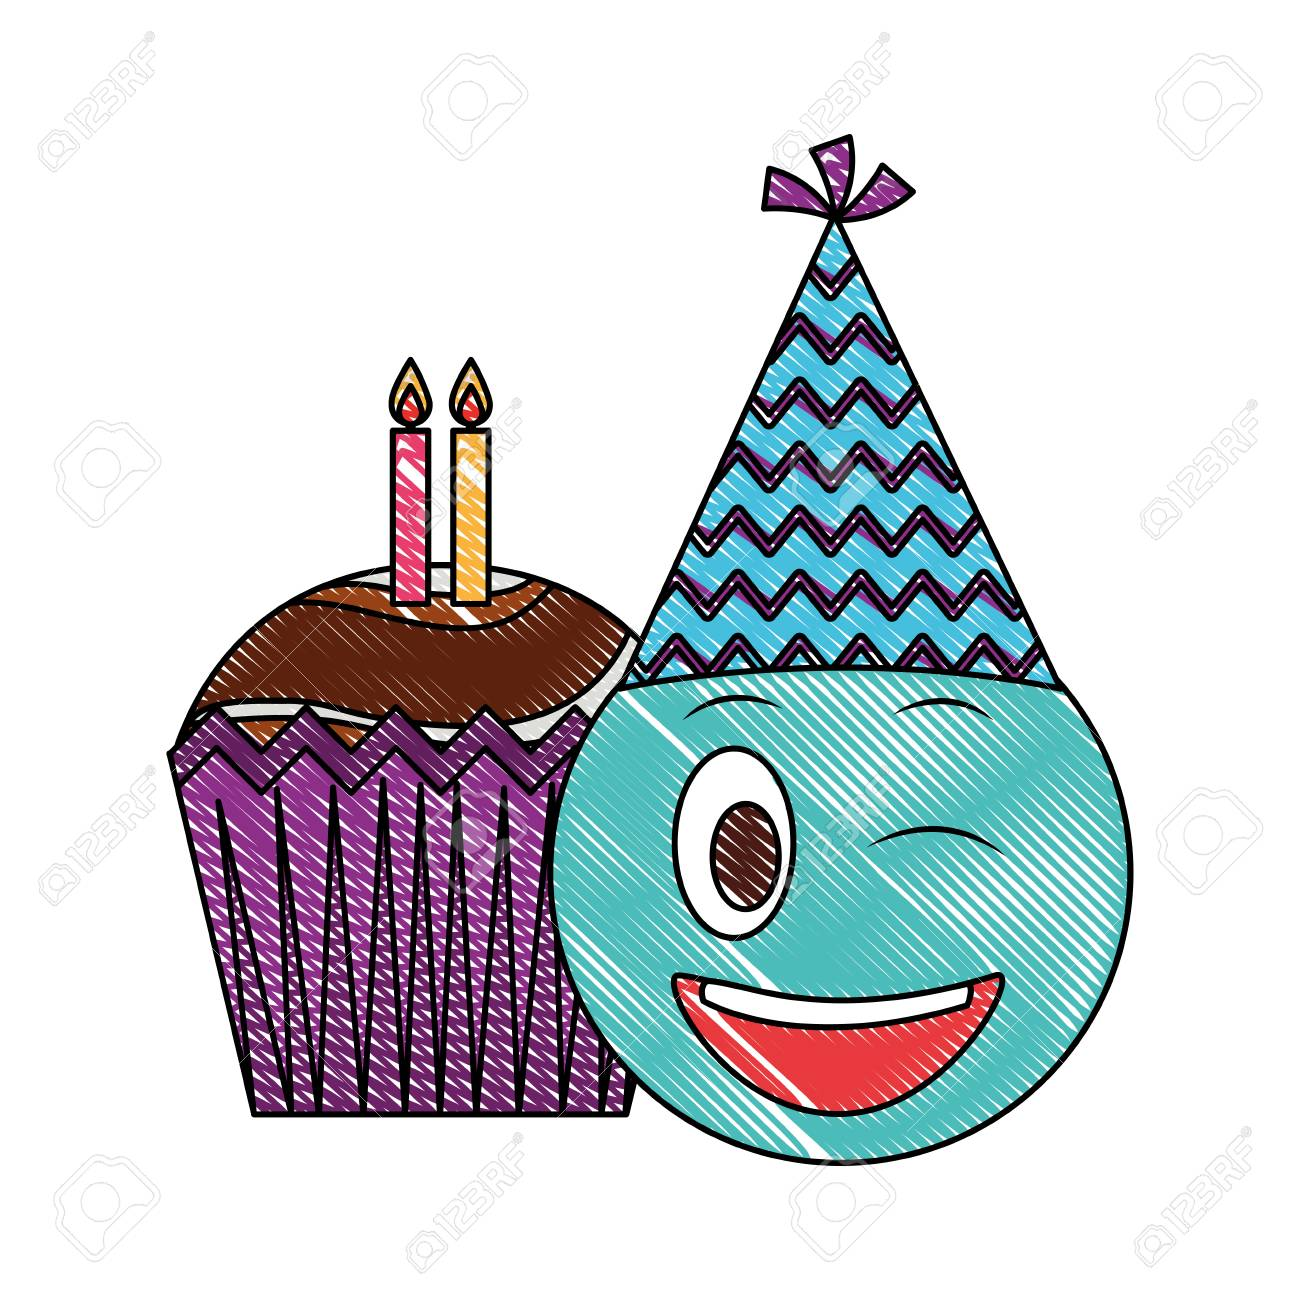 Birthday Emoji With Party Hat And Cupcakes Candles Vector Illustration Drawing Color Stock